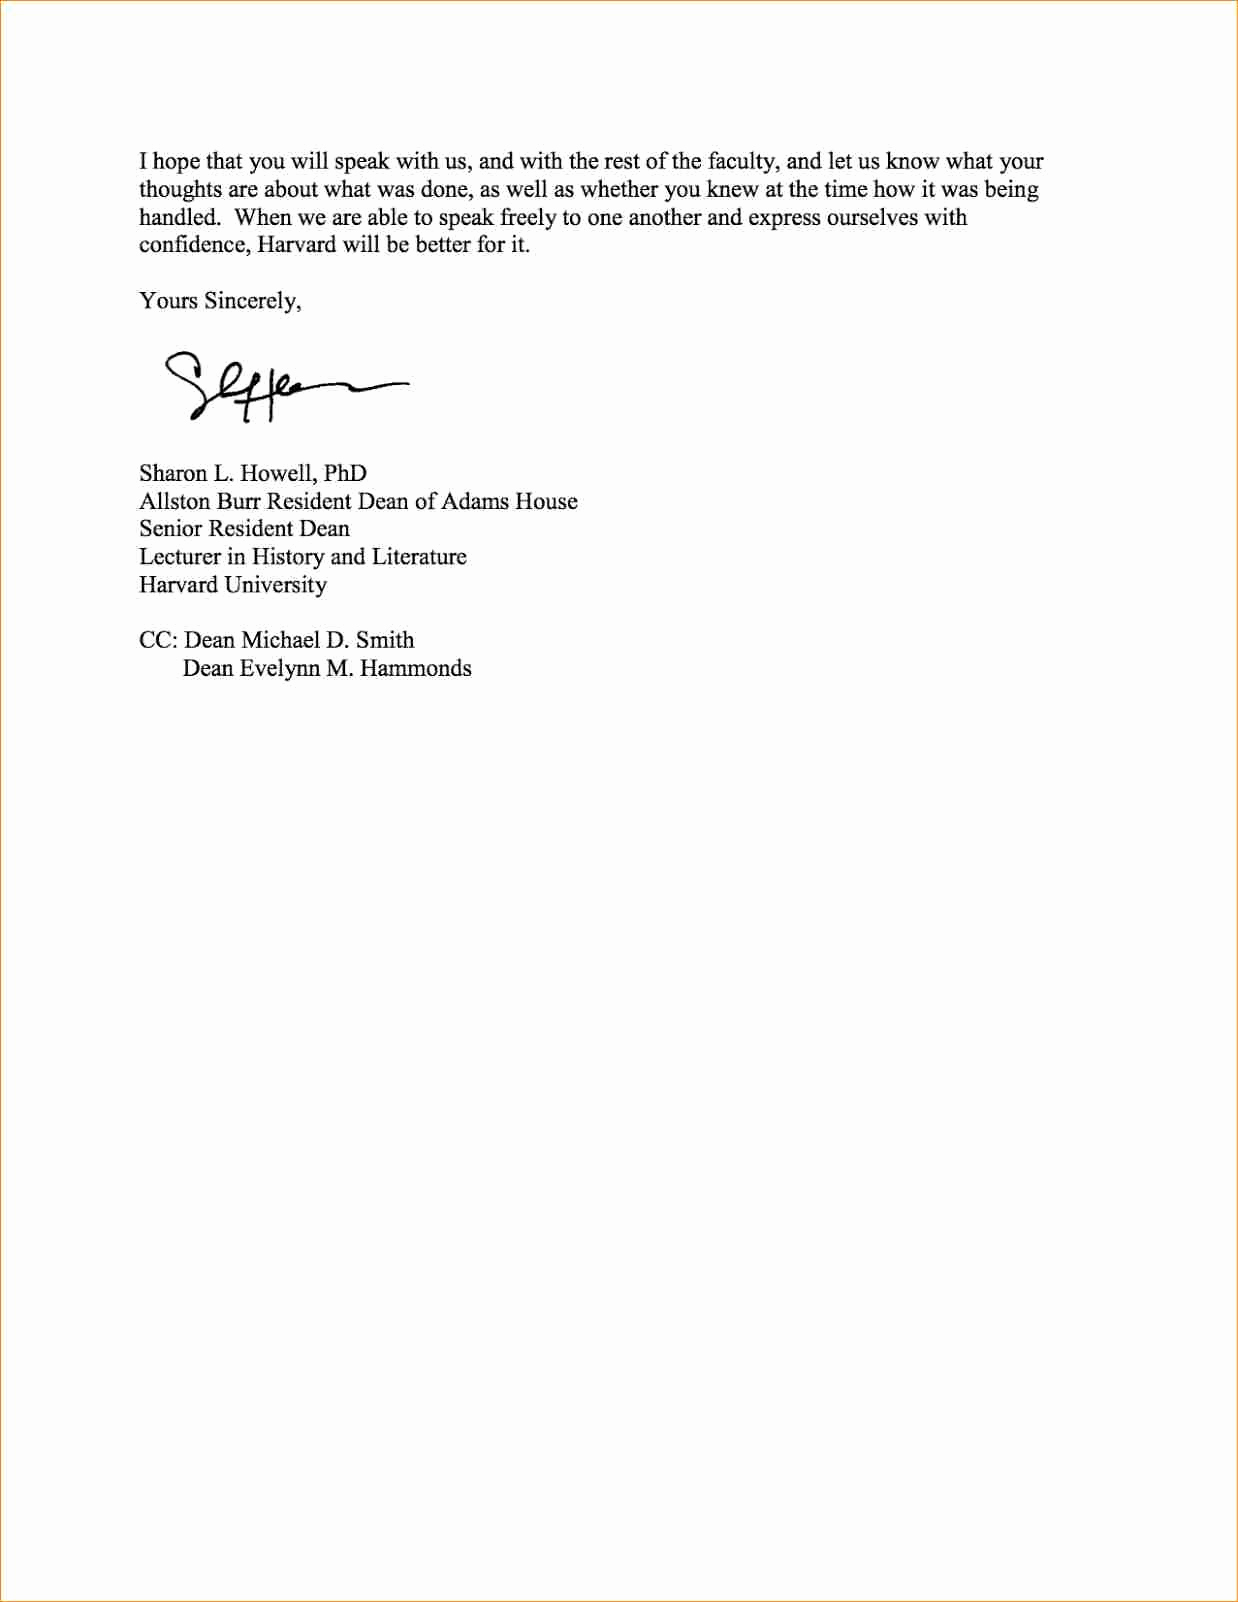 2 Weeks Notice Email Template Lovely 2 Weeks Notice Email